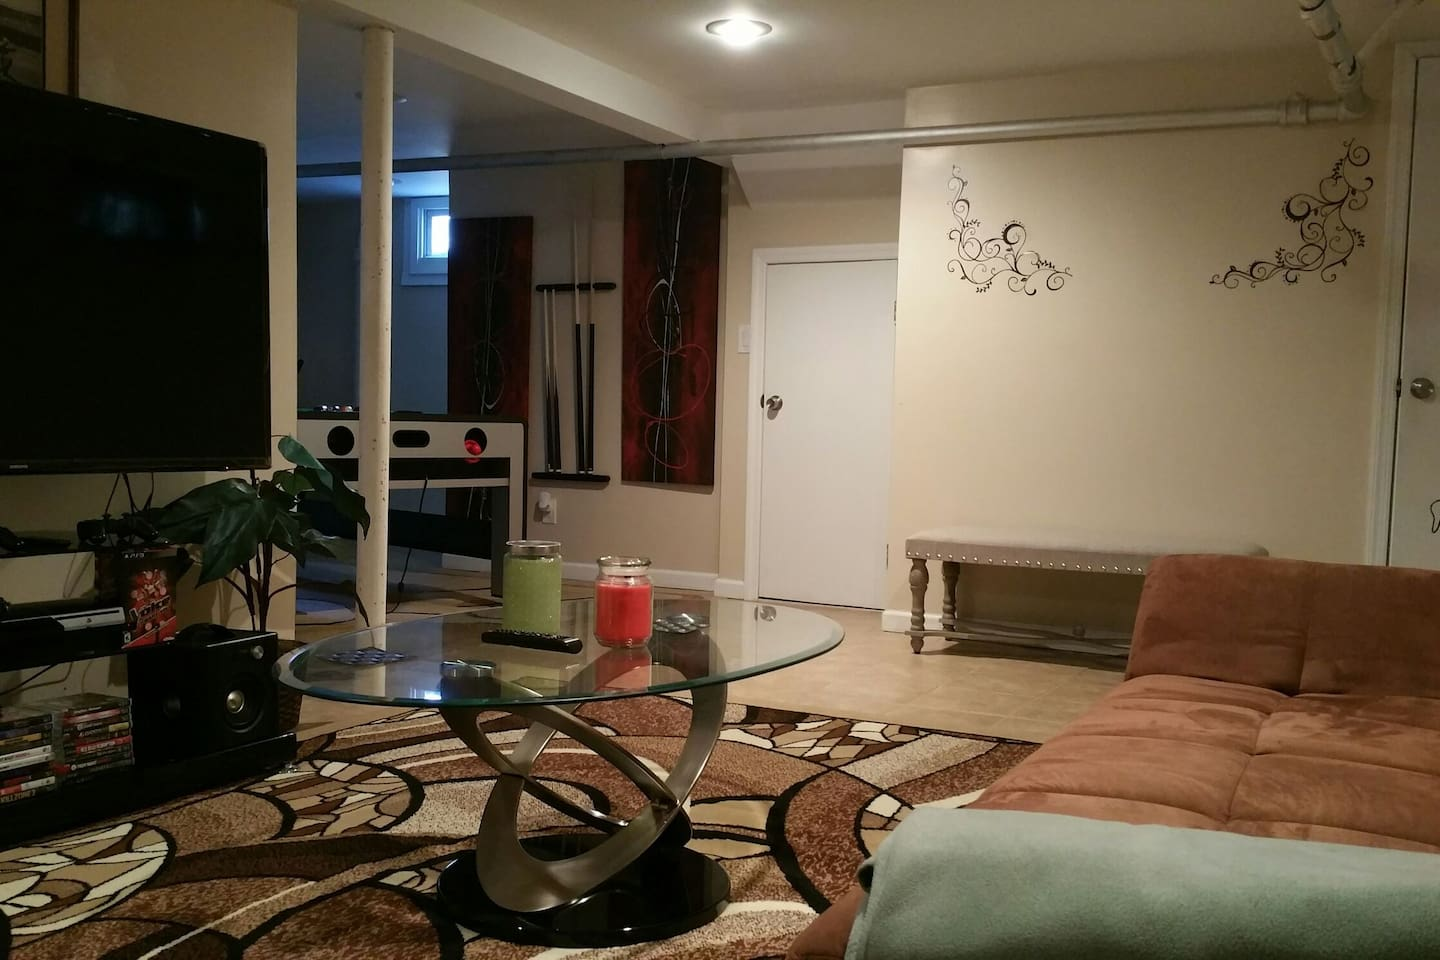 Living room is spacious,  WiFi availability great decor, feel right at home.